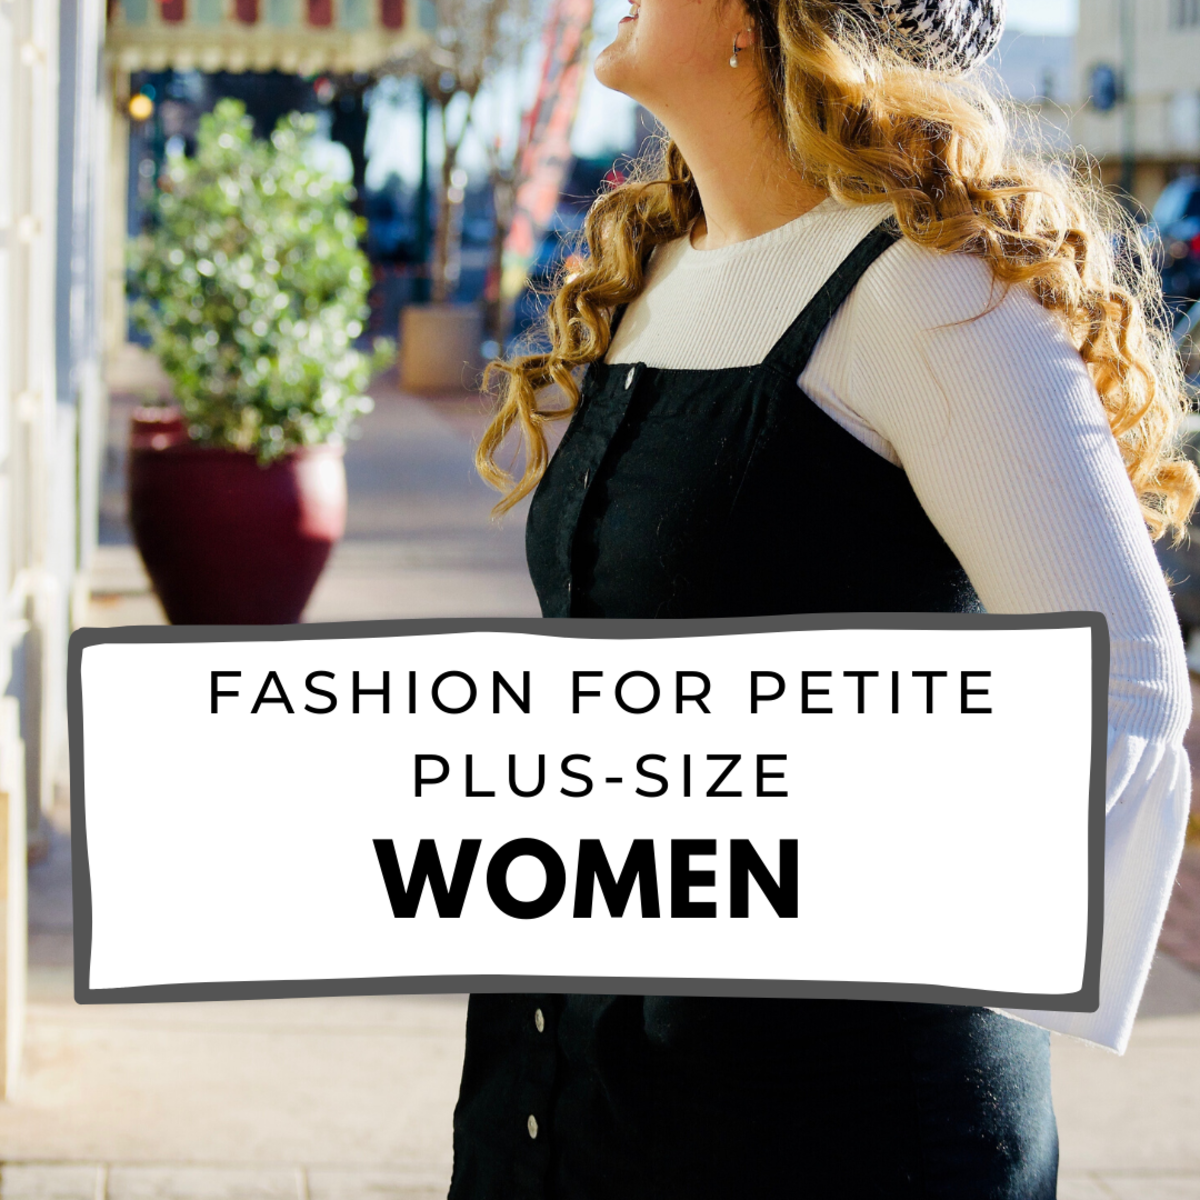 Short, Fat, and Stylish: A Fashion Guide for Plus-Size ...